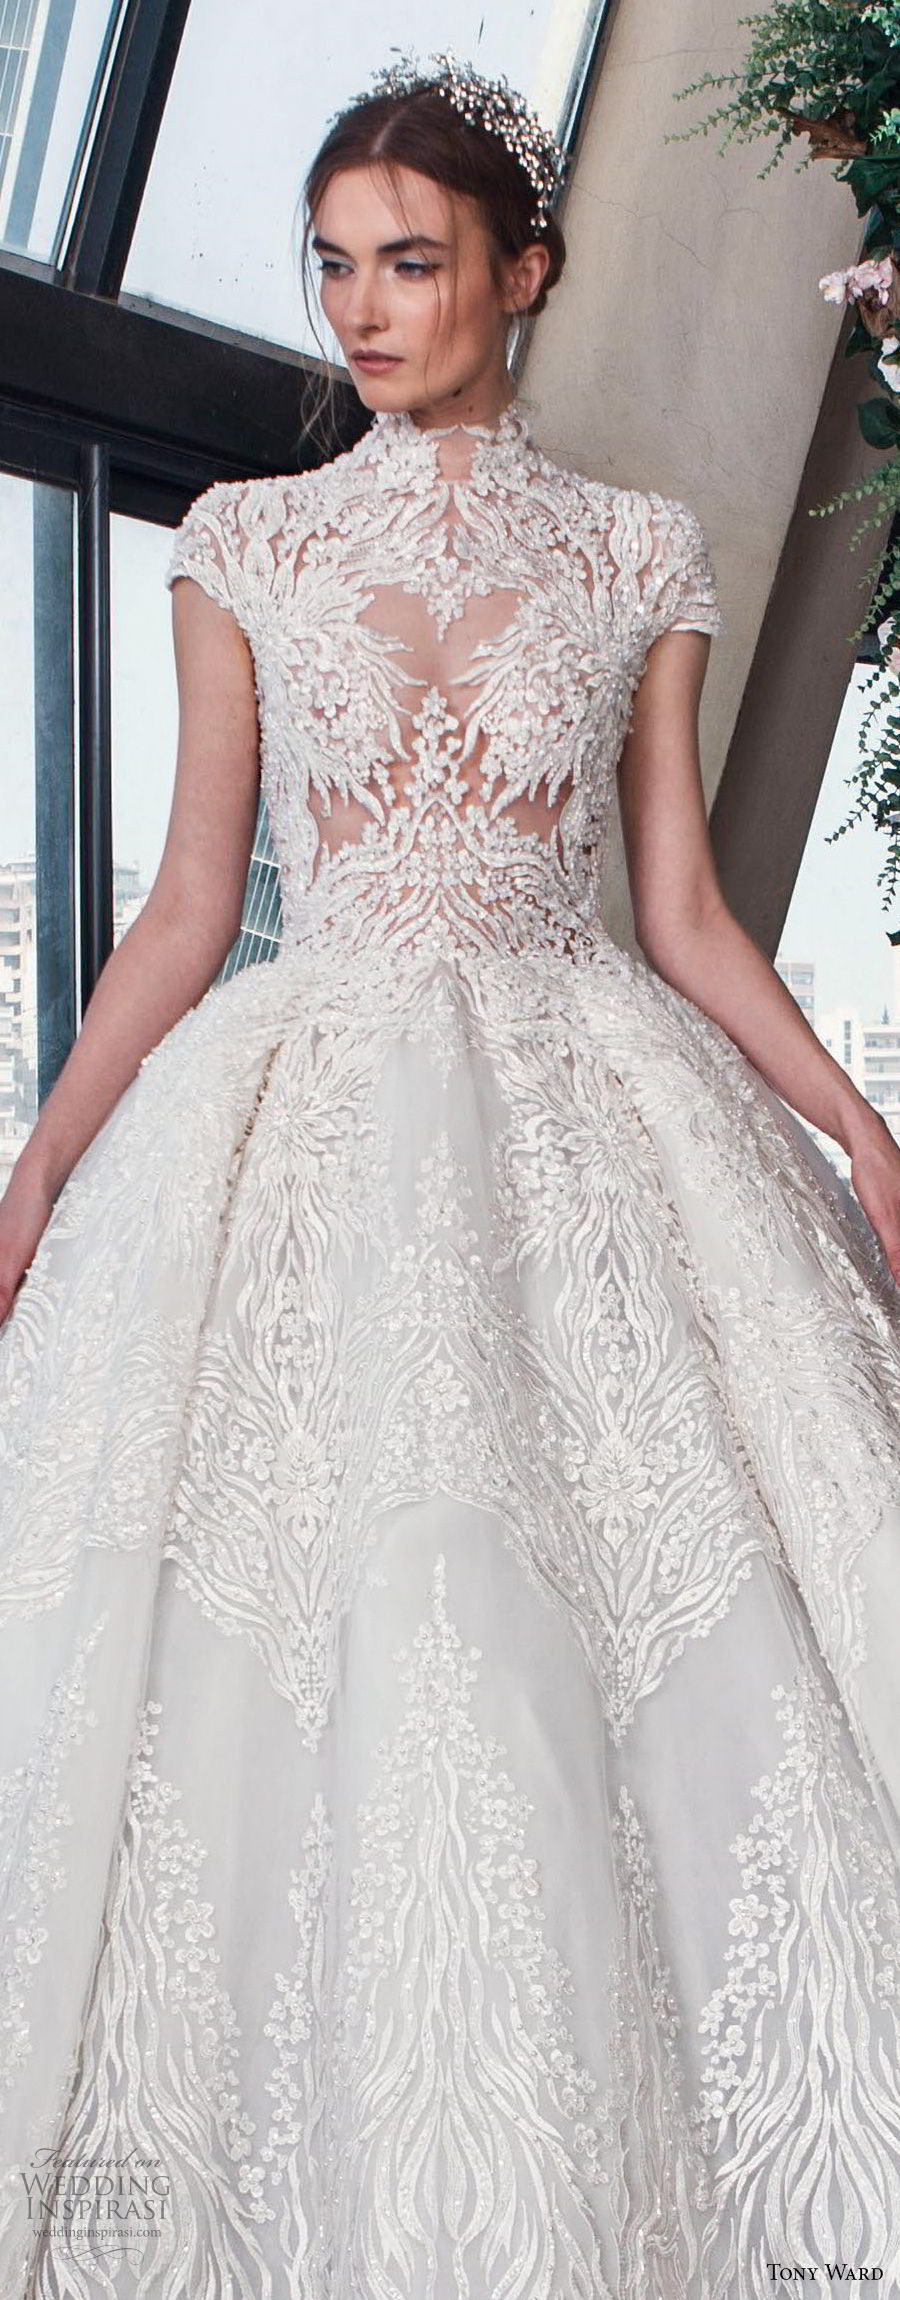 tony ward mariee 2019 cap sleeves high neck full embellishment romantic princess ball gown a  line wedding dress chapel train (10) zv